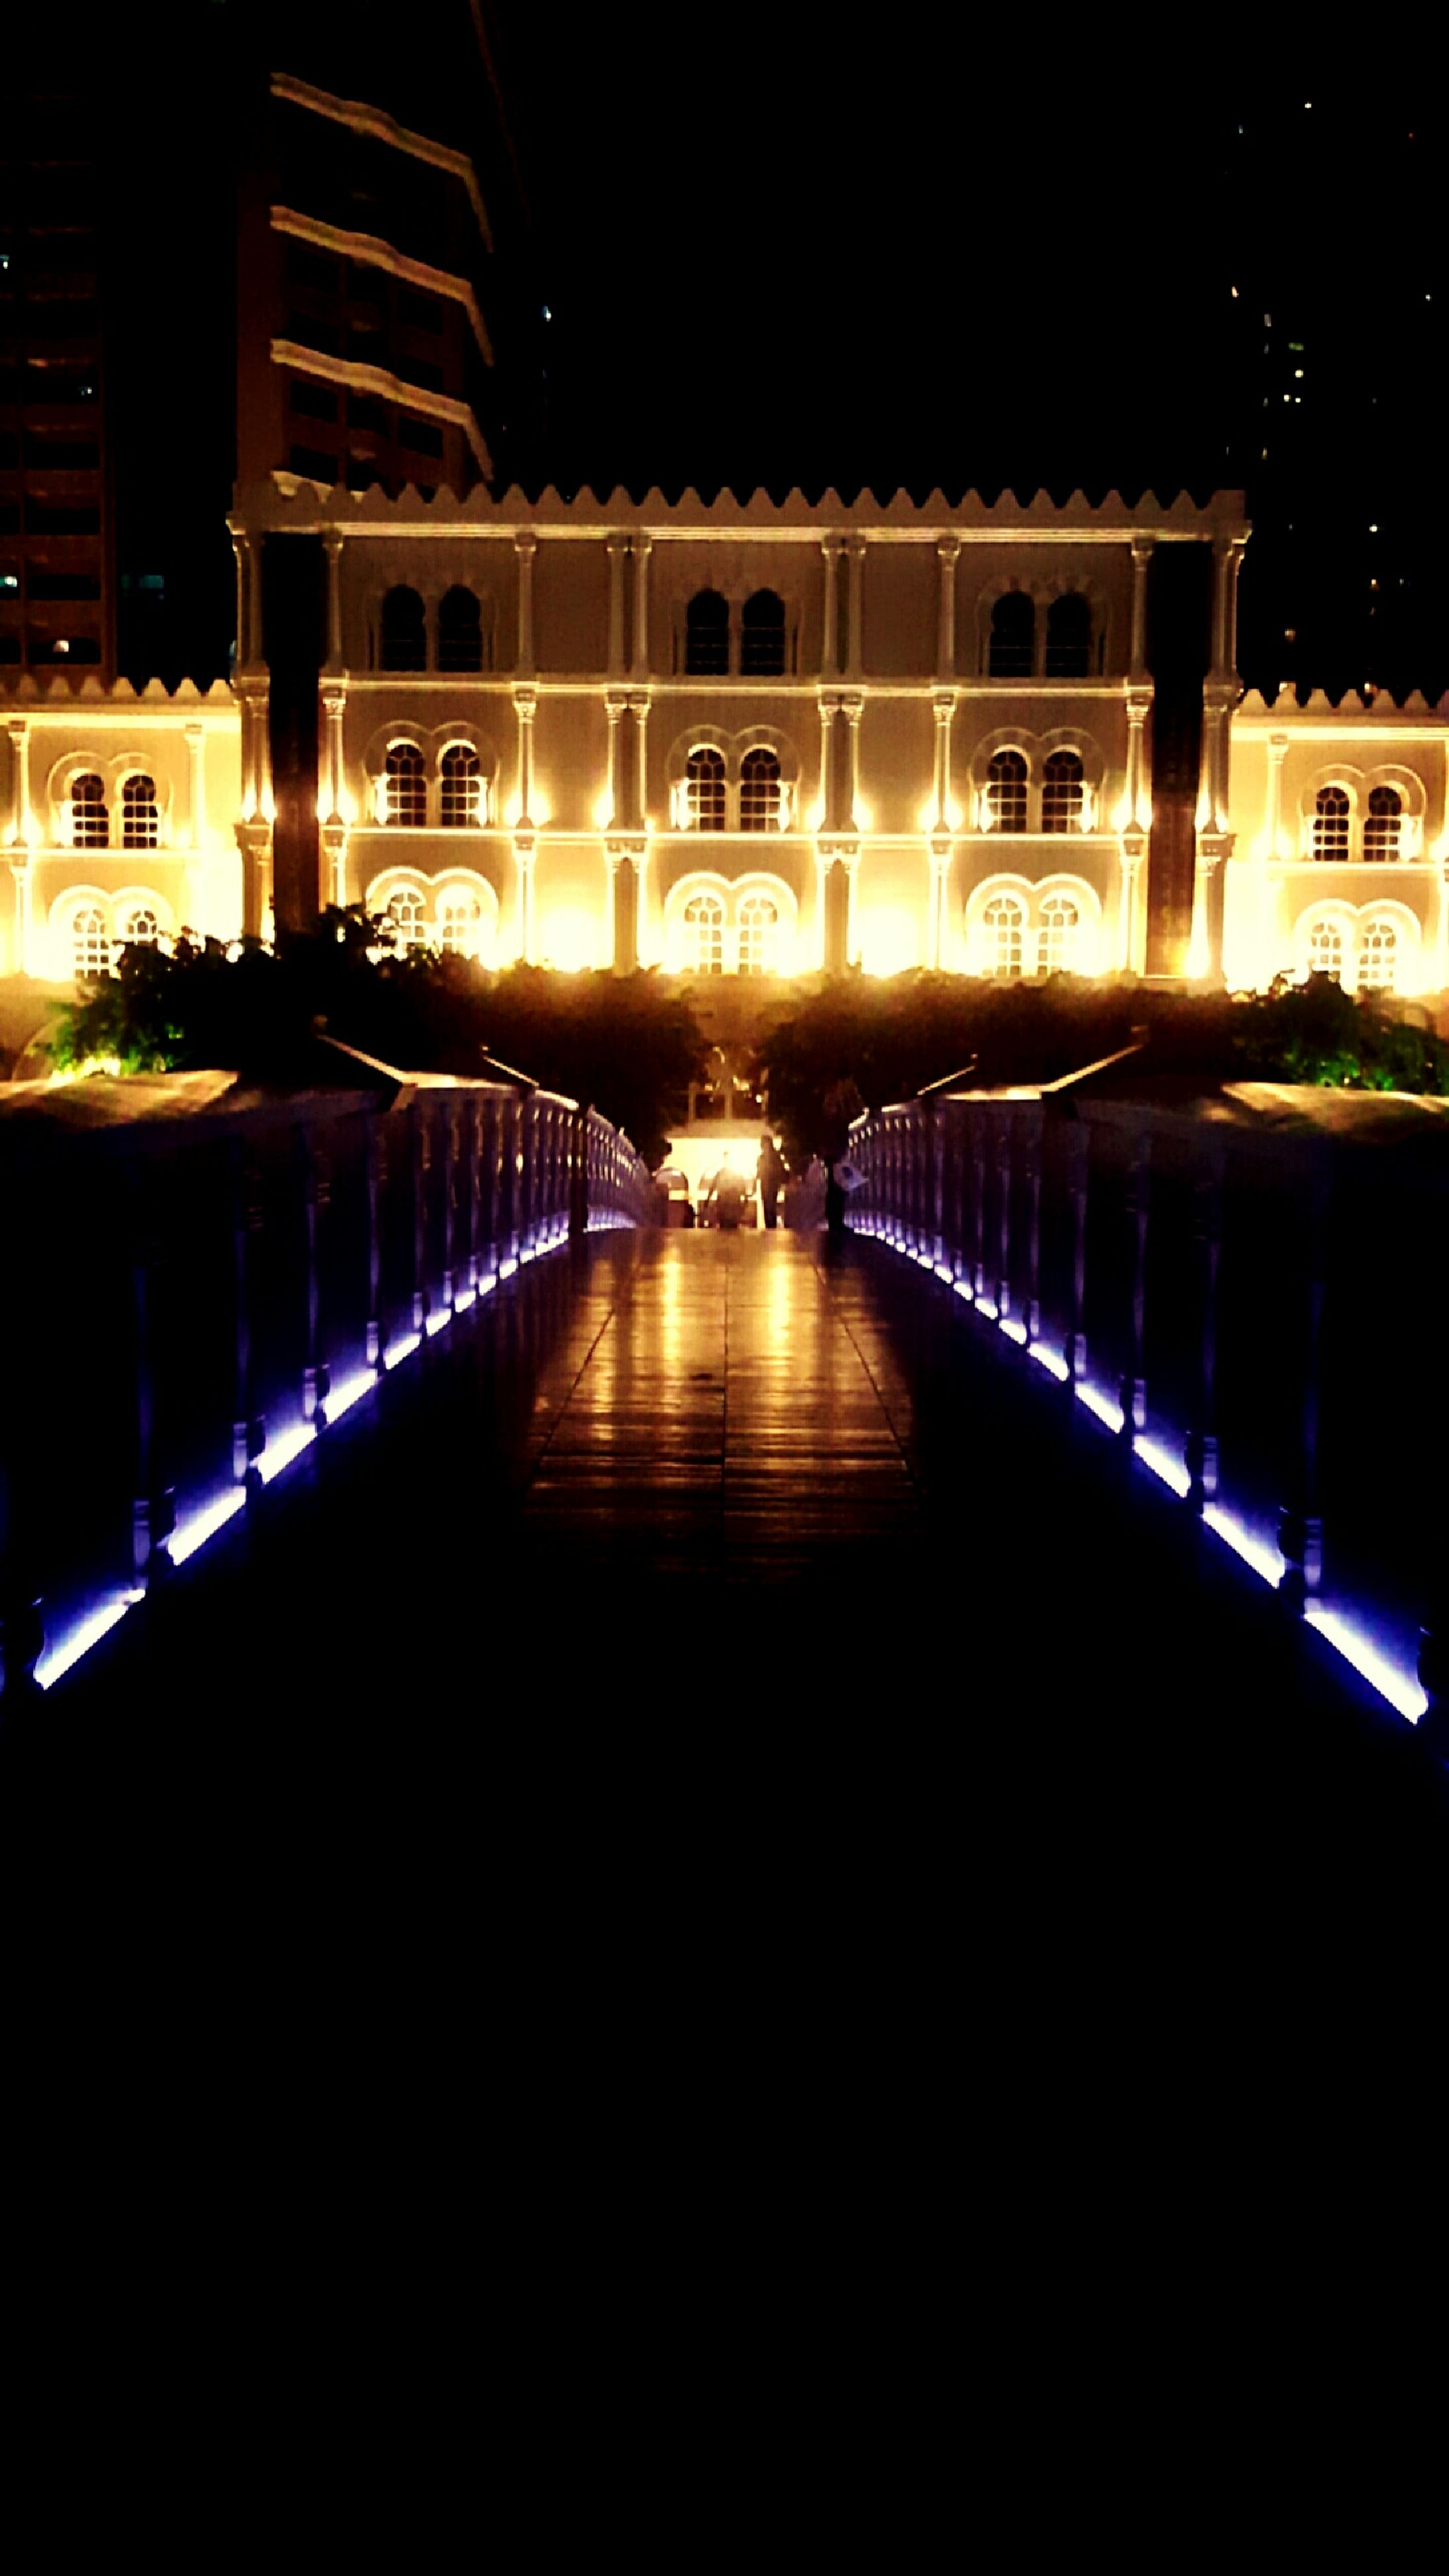 night, illuminated, reflection, architecture, water, built structure, building exterior, no people, connection, outdoors